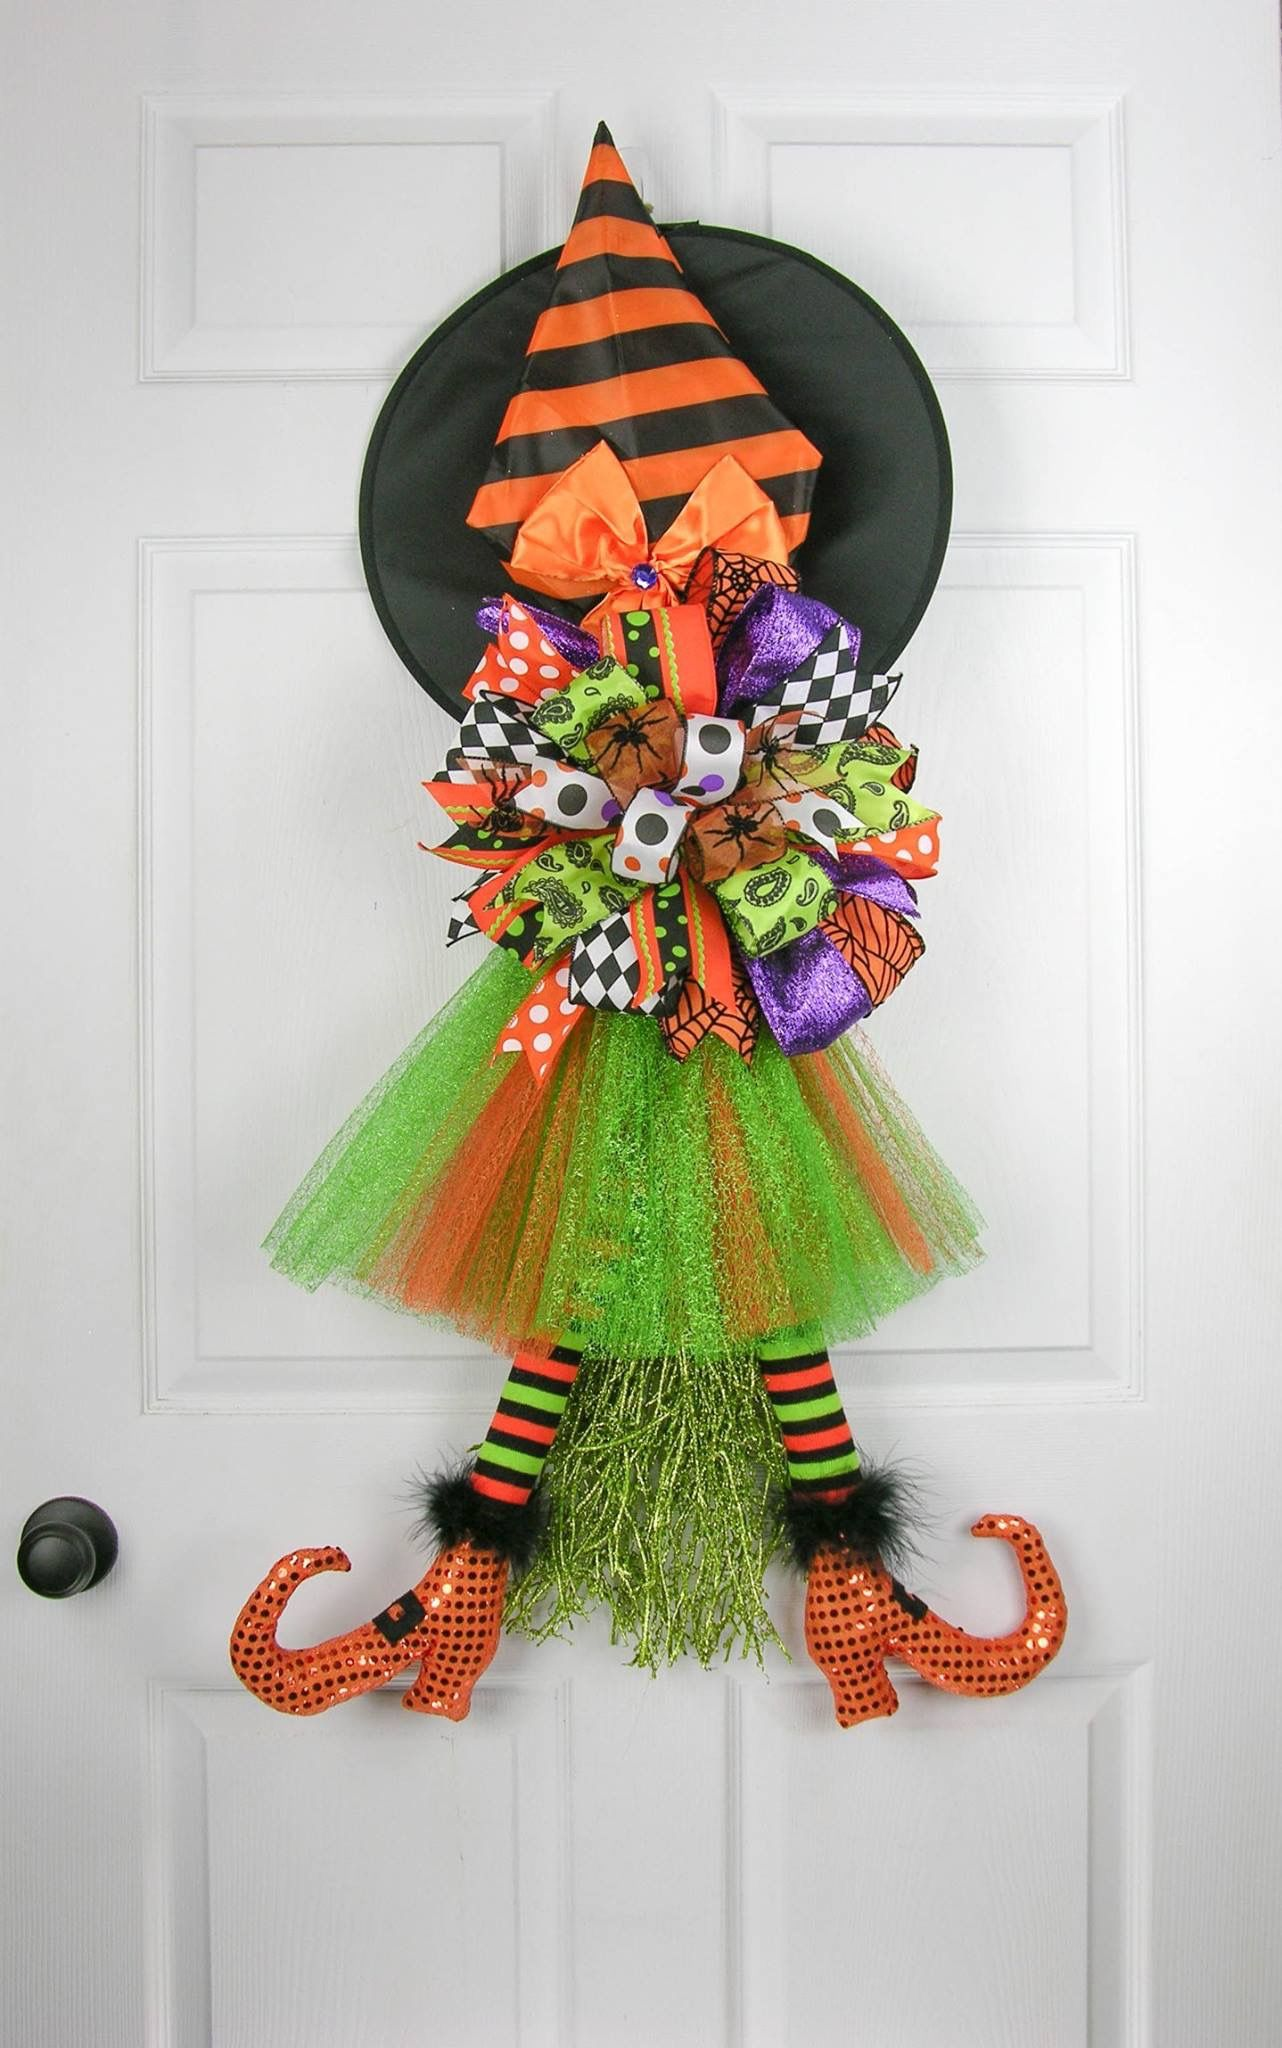 Witch in Tutu with Terri Bow #terribow MilandDil Designs - Whimsical Halloween Decorations